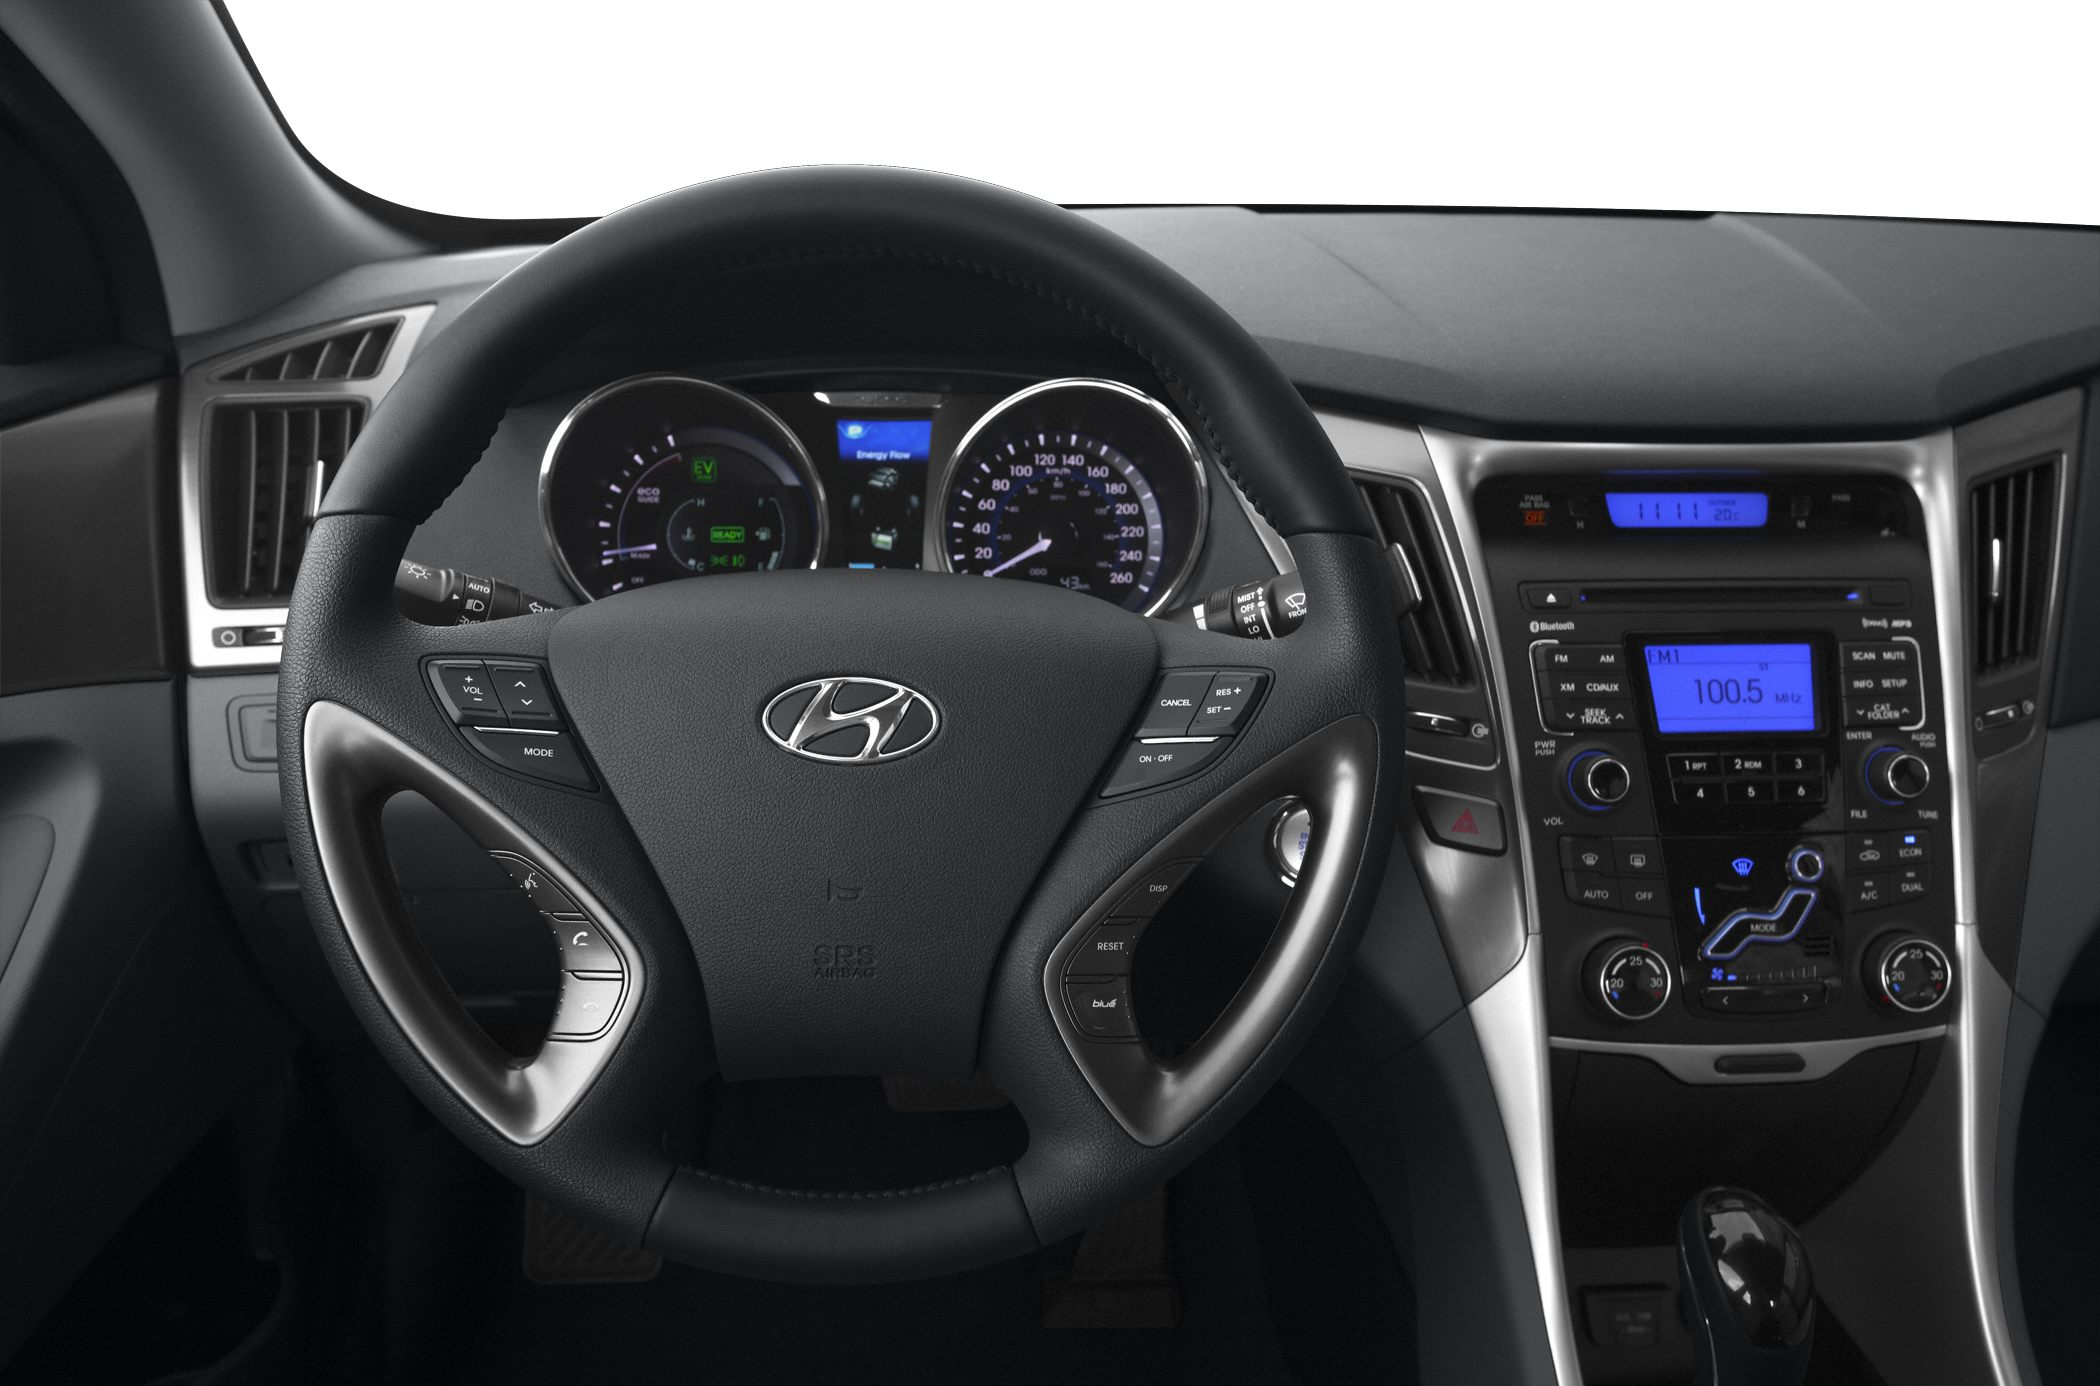 2014 Hyundai Sonata Information And Photos Zomb Drive